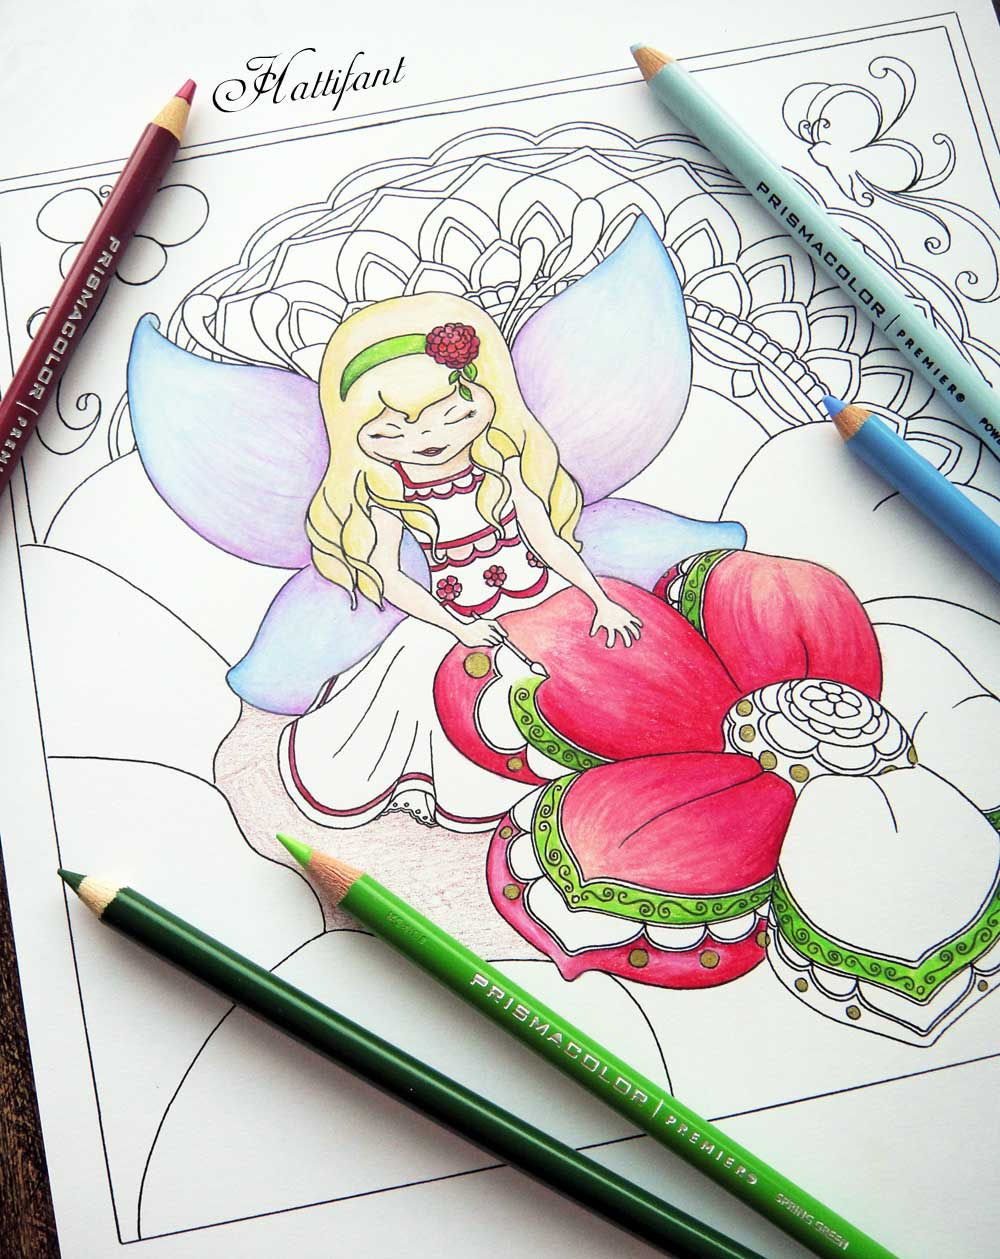 Free coloring pages website - Hattifant S Grown Up Colroing Page Fairy Painting Spring